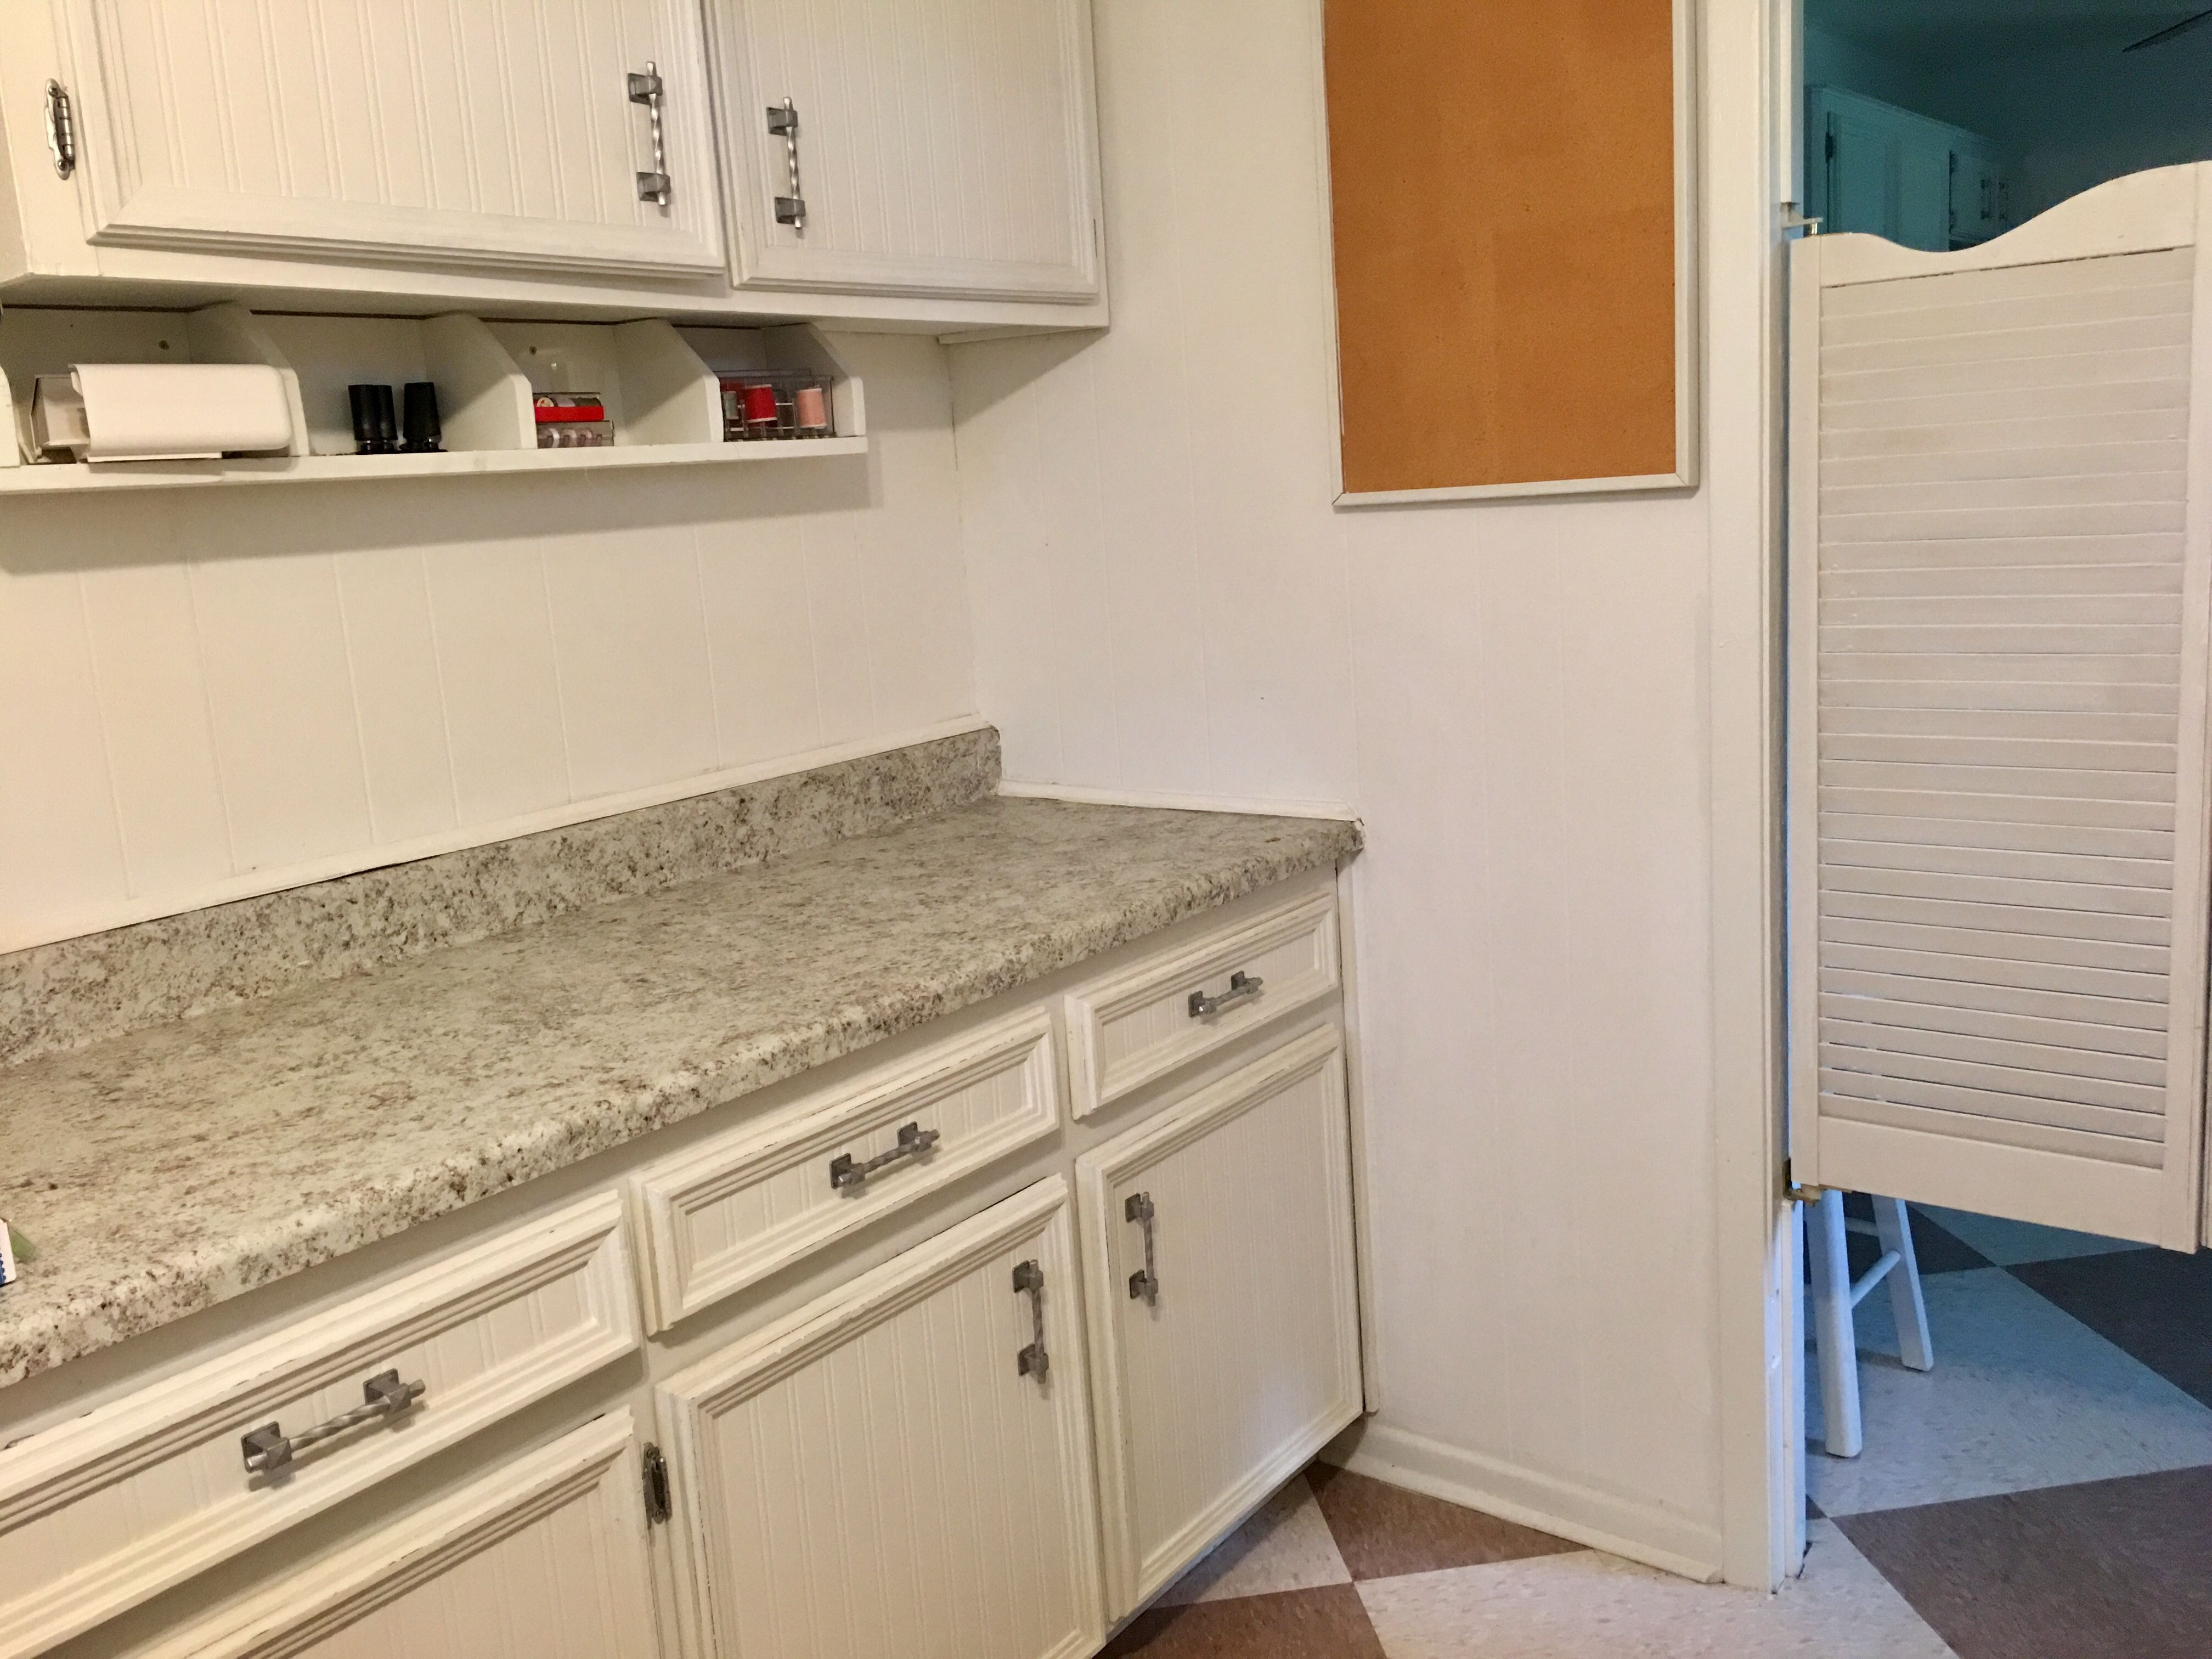 The Upper Cabinet Left Was Originally Free Hanging In Kitchen Blocking Sight Lines It Was Removed And Relocated An Cafe Door Upper Cabinets Mid Century Ranch